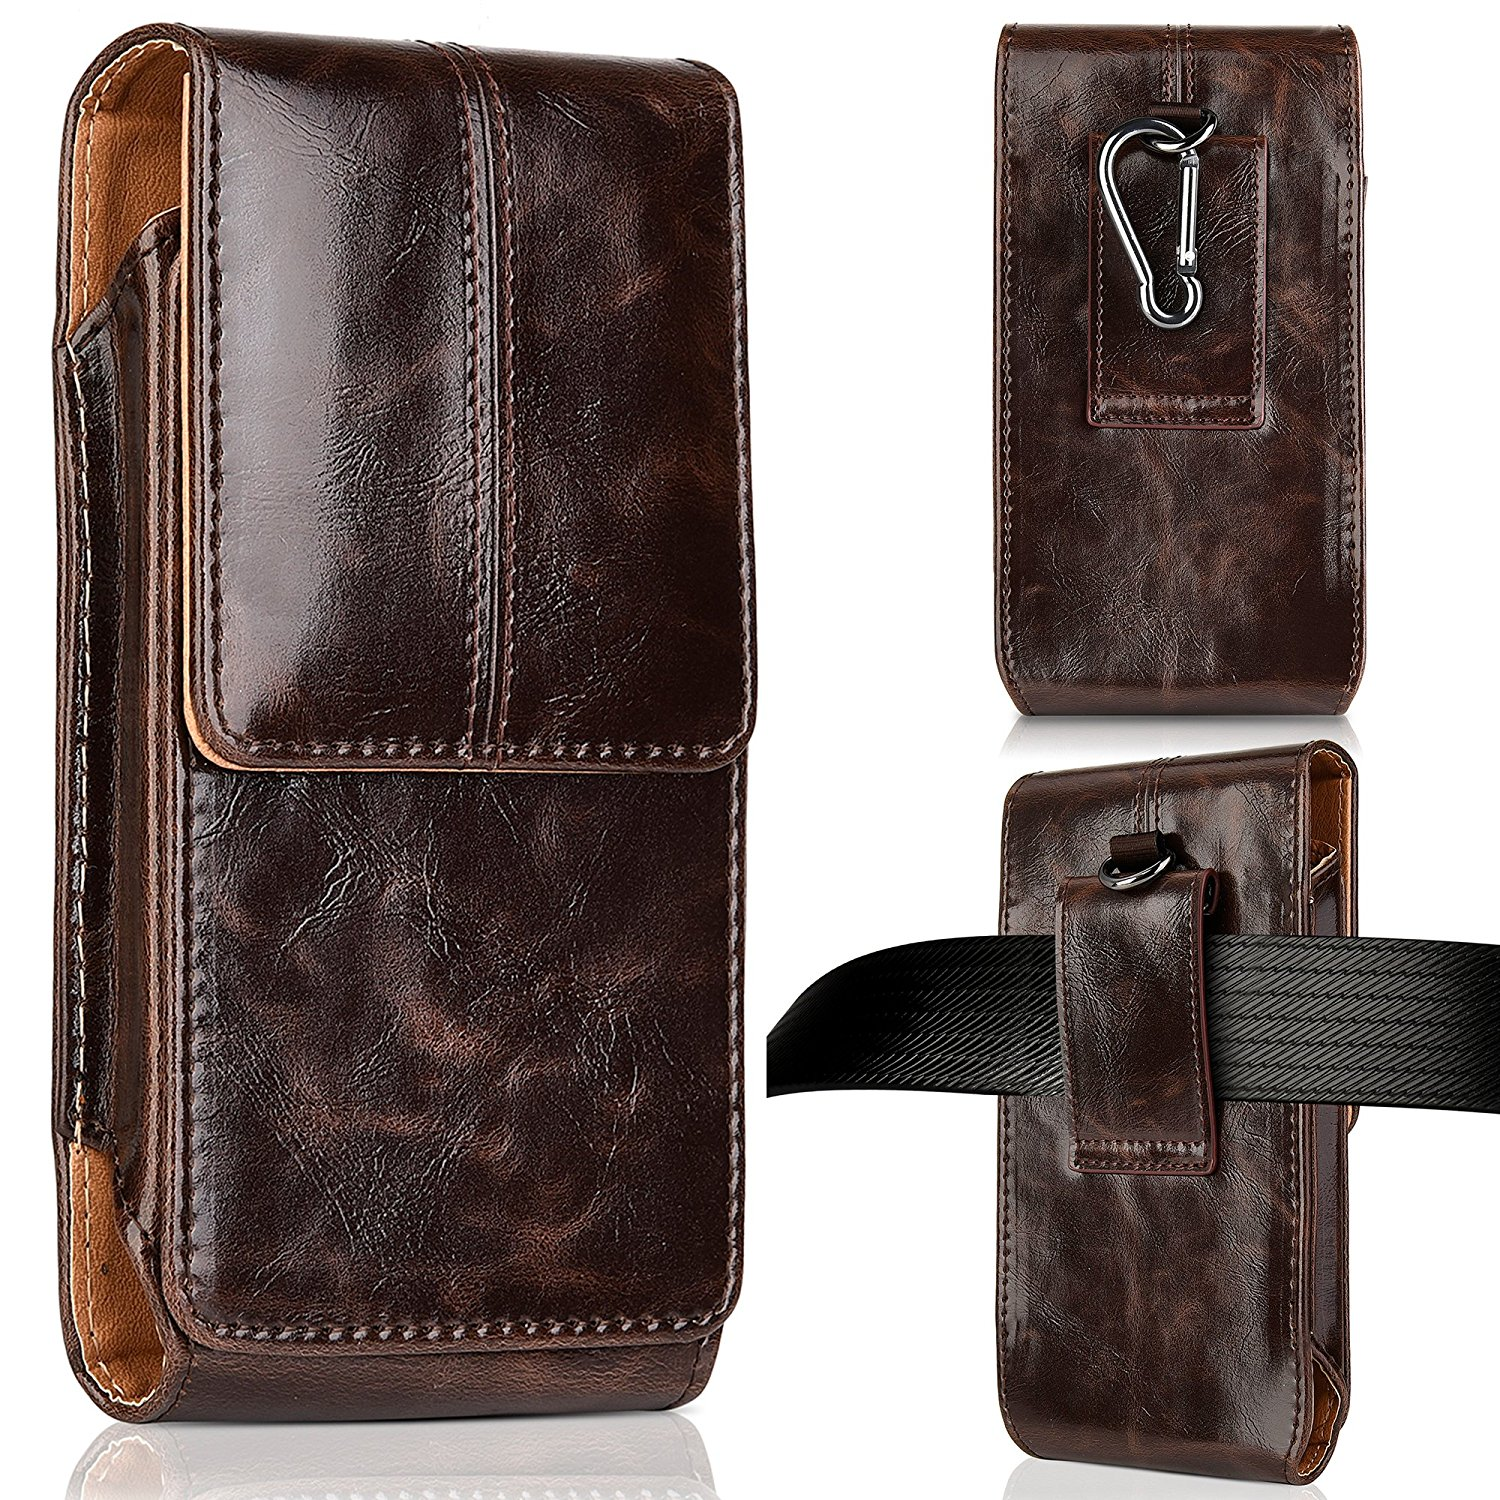 check out a6a4f 1bf47 New For Apple iPhone X 8 7 6 6S PLUS Leather Case Cover Holster Belt ...